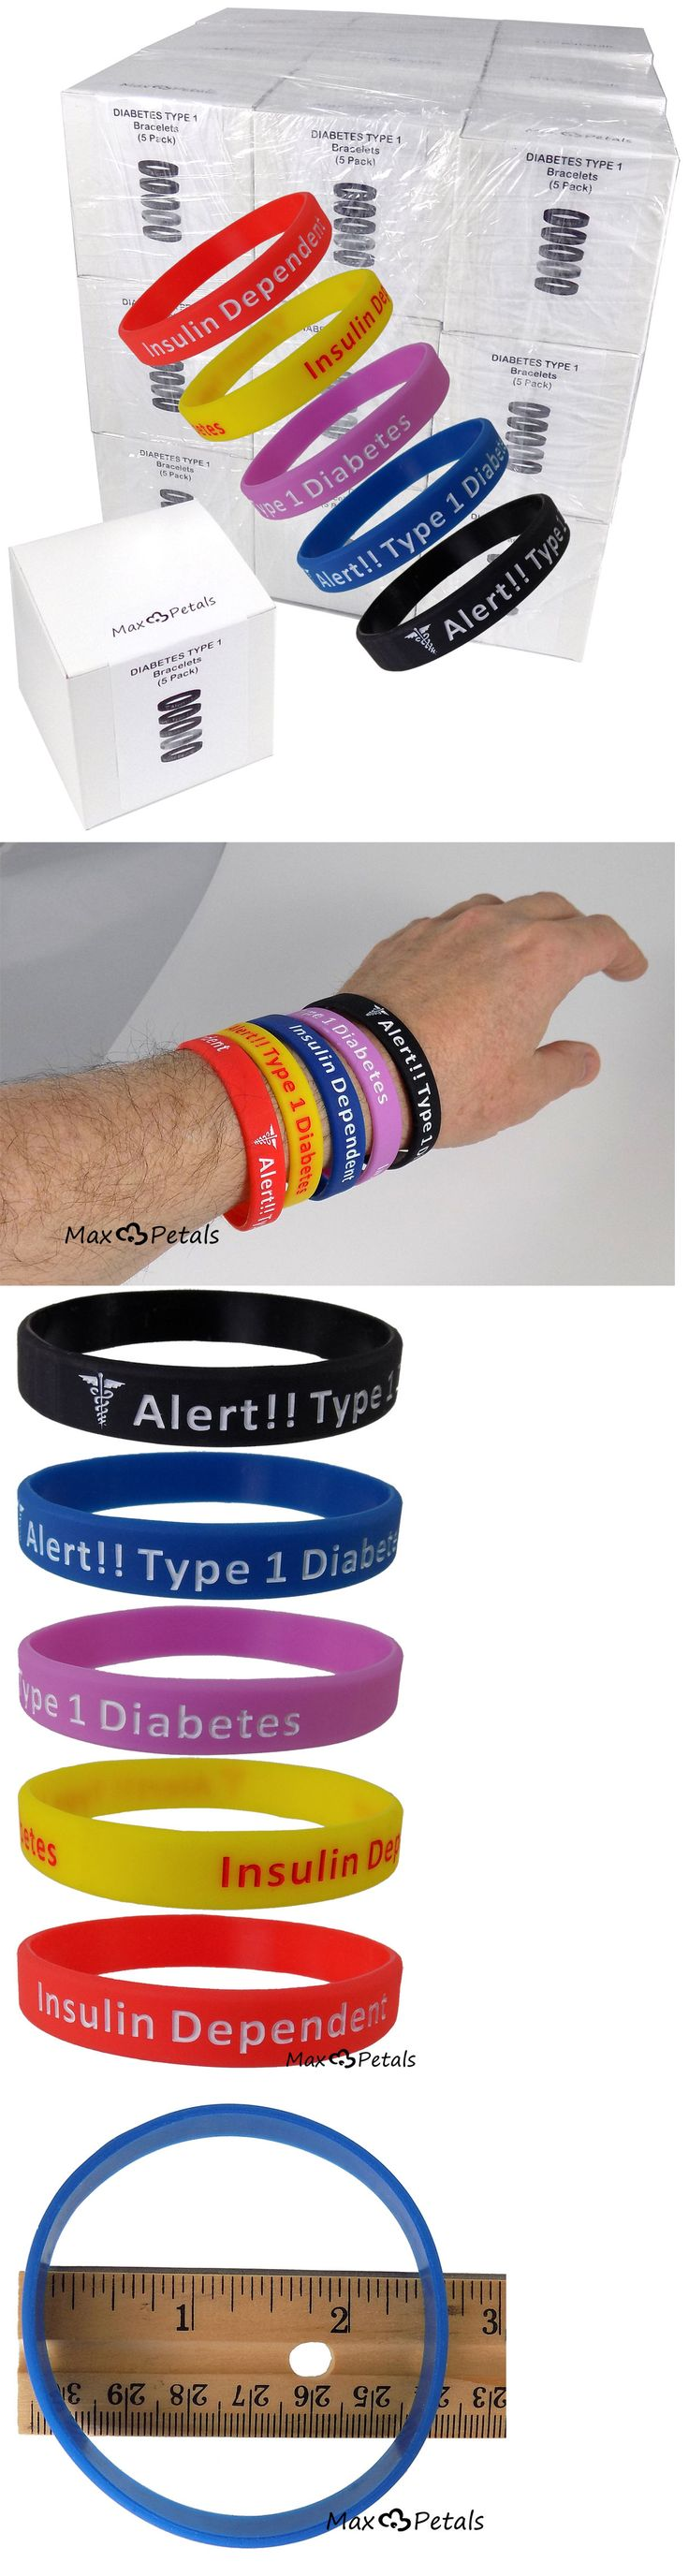 Wristbands 112603: Diabetes Type 1 Insulin Dependent Silicone Bracelet Wristbands Lot 27 5 Packs -> BUY IT NOW ONLY: $189.95 on eBay!